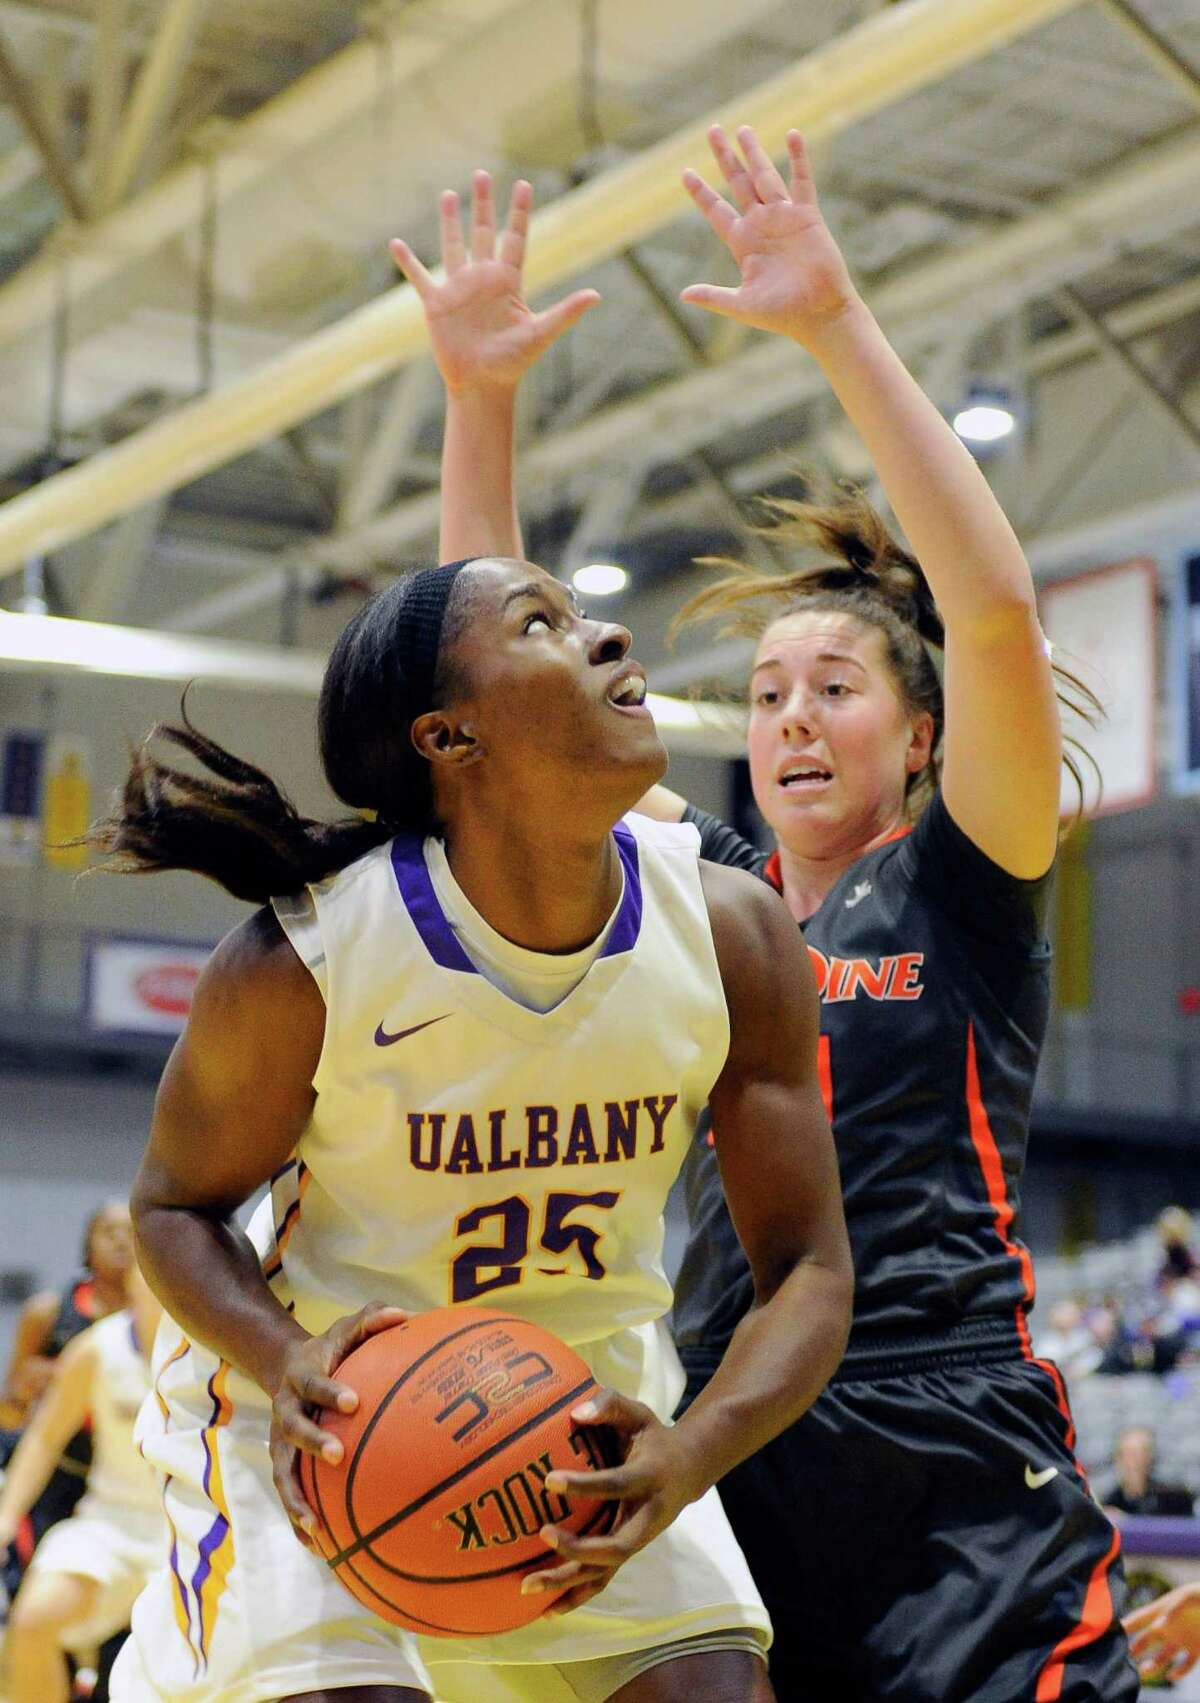 UAlbany's Shereesha Richards (25) drives to the basket against Pepperdine during the first half of an NCAA women's college basketball game on Sunday, Nov. 15, 2015, in Albany, N.Y. (Hans Pennink / Special to the Times Union) ORG XMIT: HP106